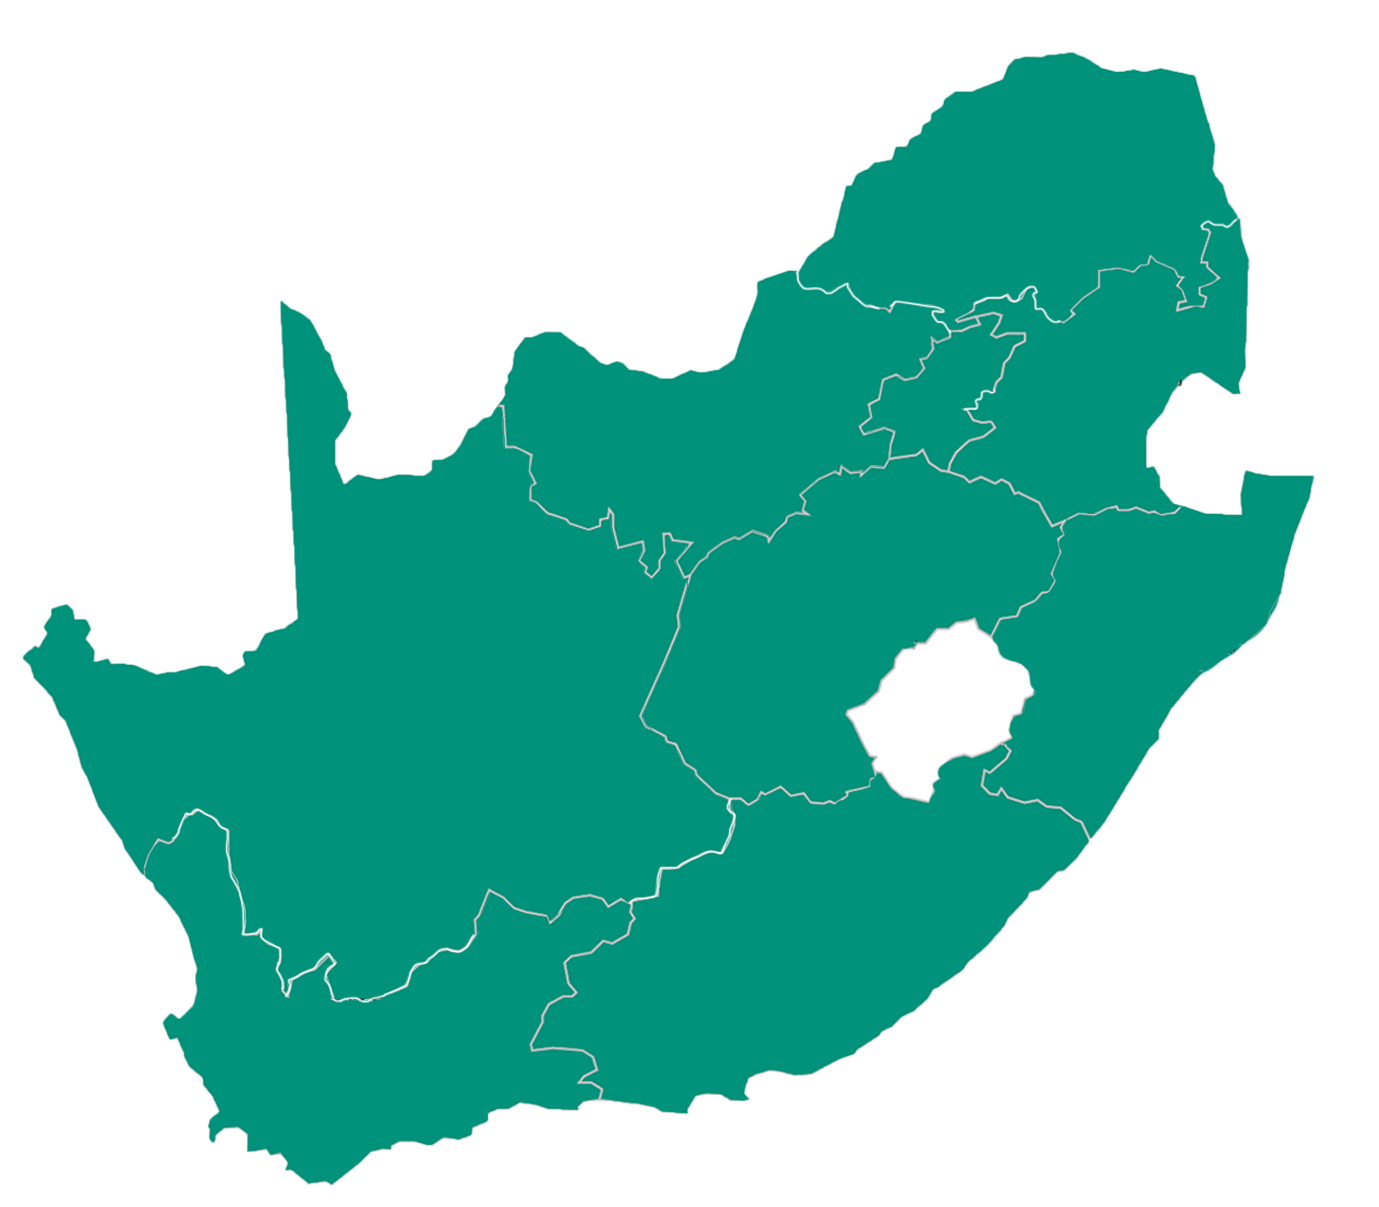 South africa map png. Agsa click on the